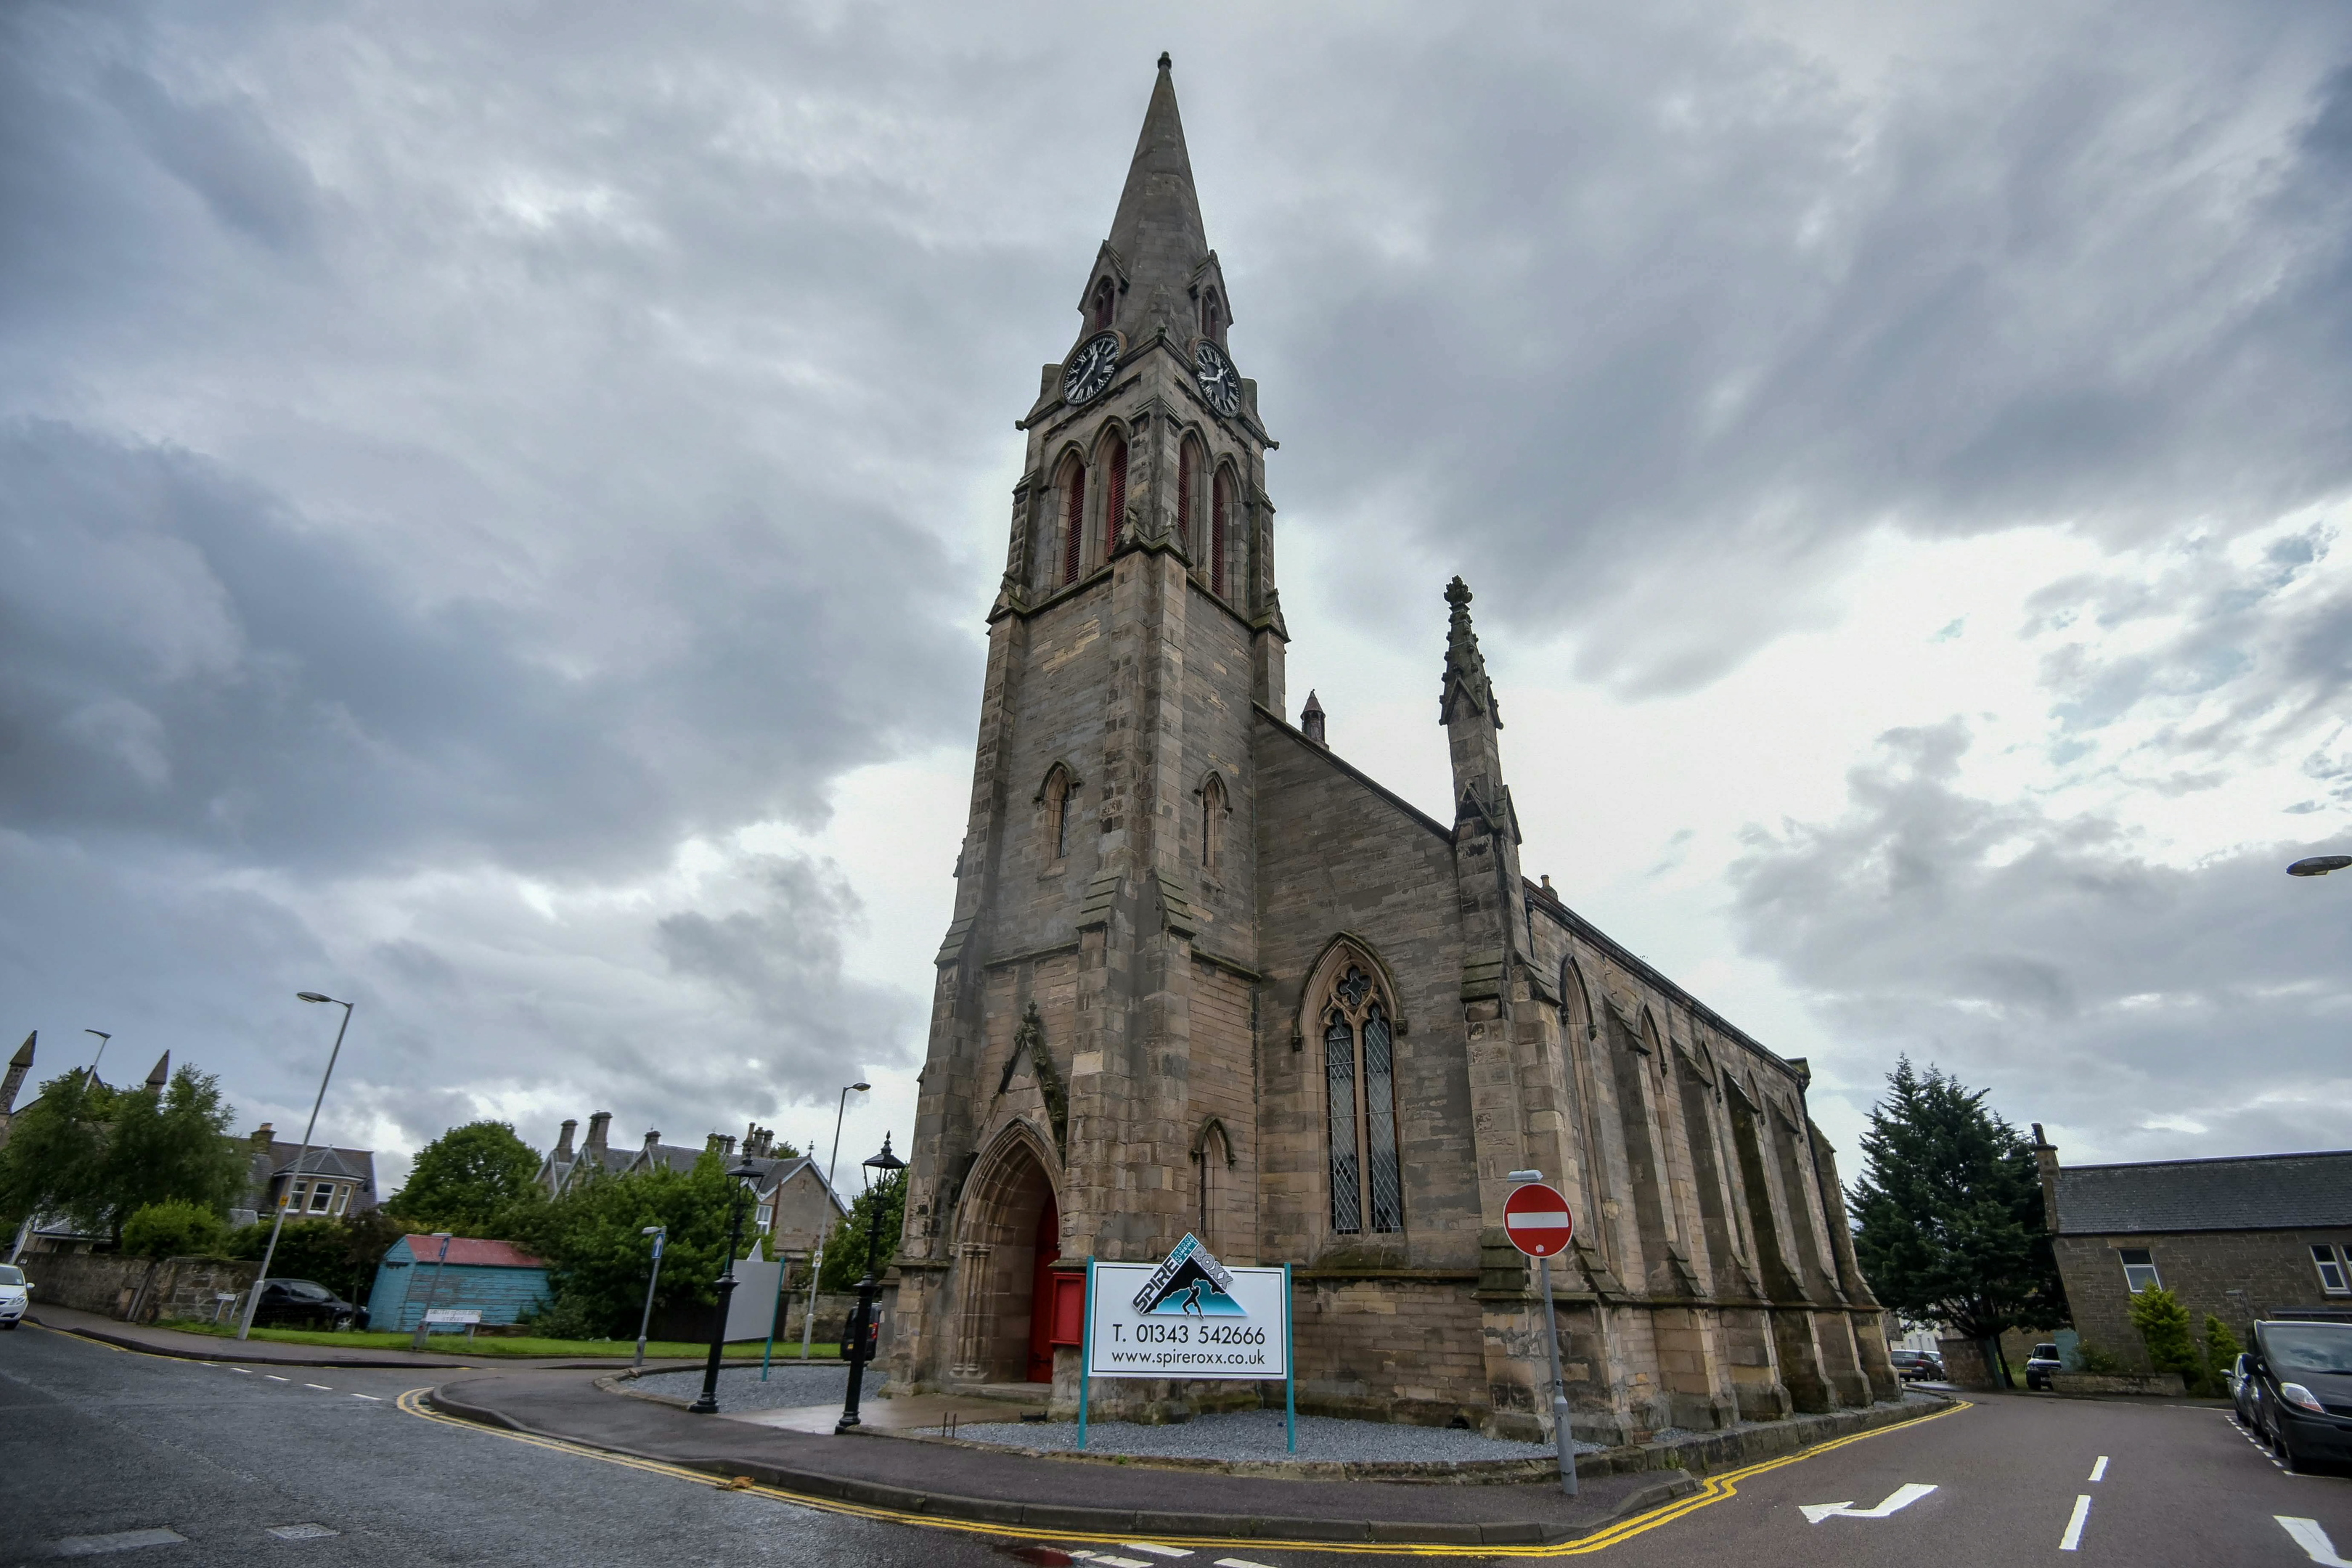 The former church has been home to Spireroxx for nearly three years.